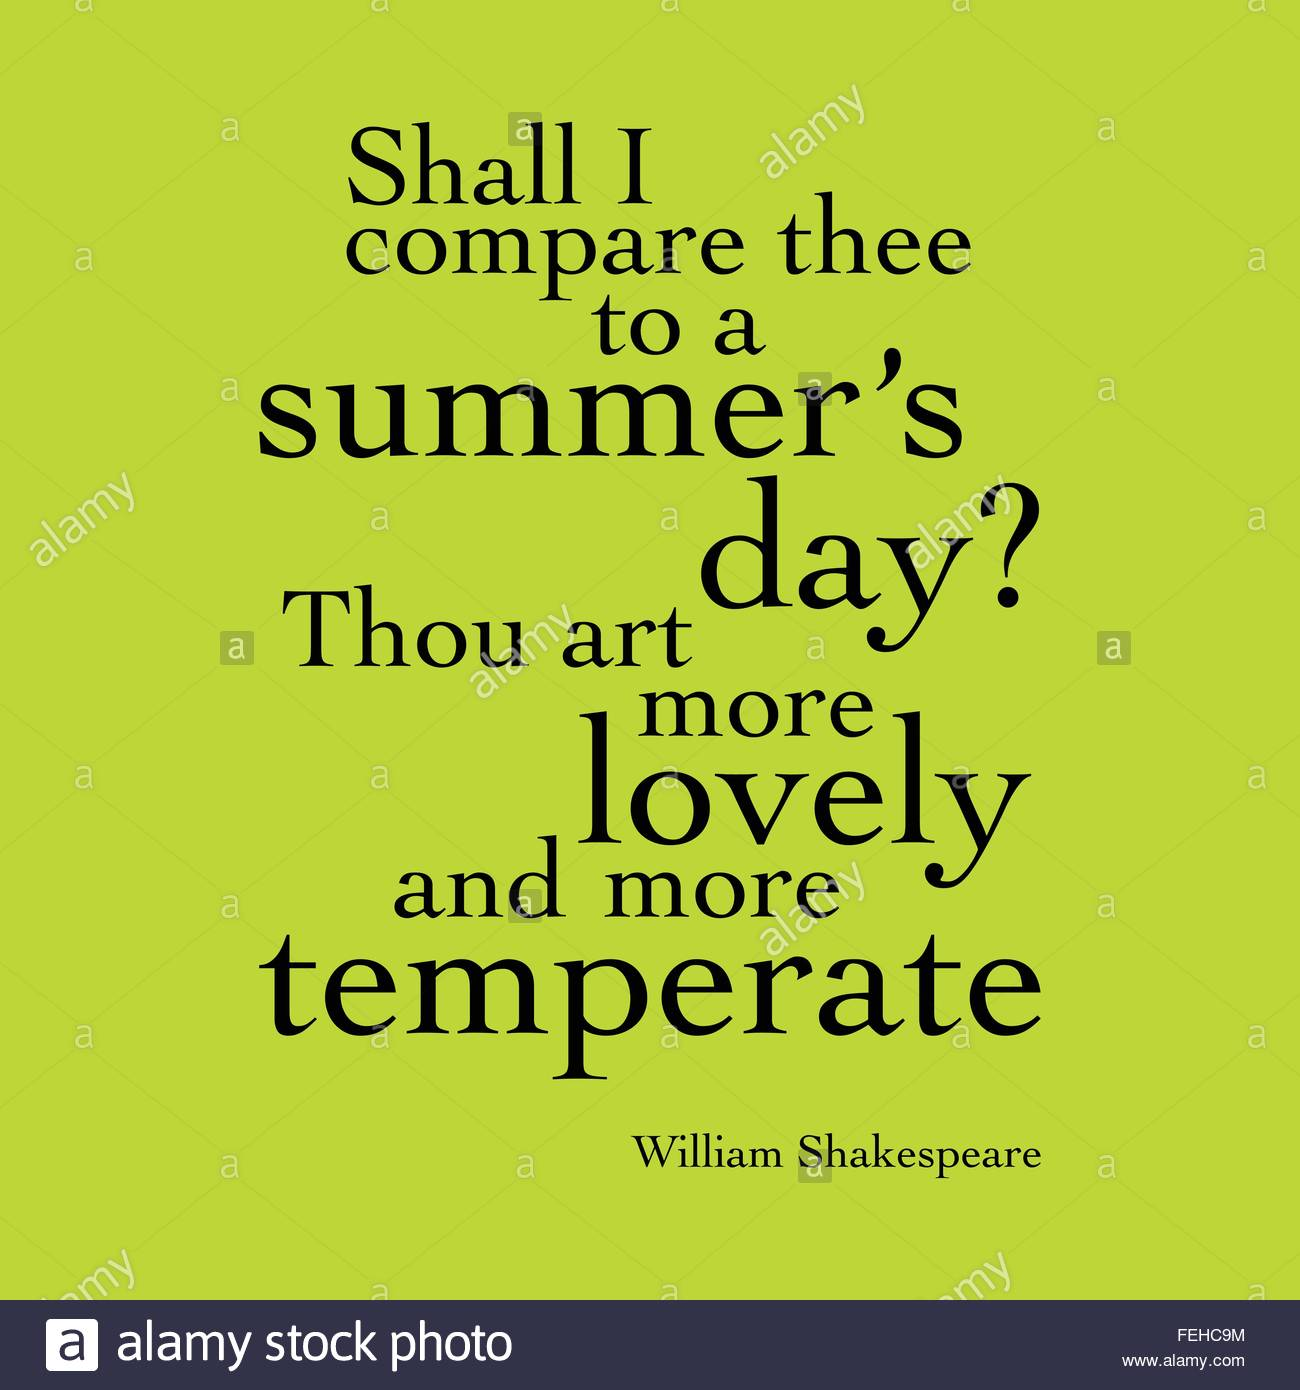 shall i compare thee to summers The author (shakespeare) is asking how he can compare his beloved to a summer's day, and saying that she is more beautiful and more temperate than that he goes on to describe in more detail how this is so, and finishes by saying that her summer w.